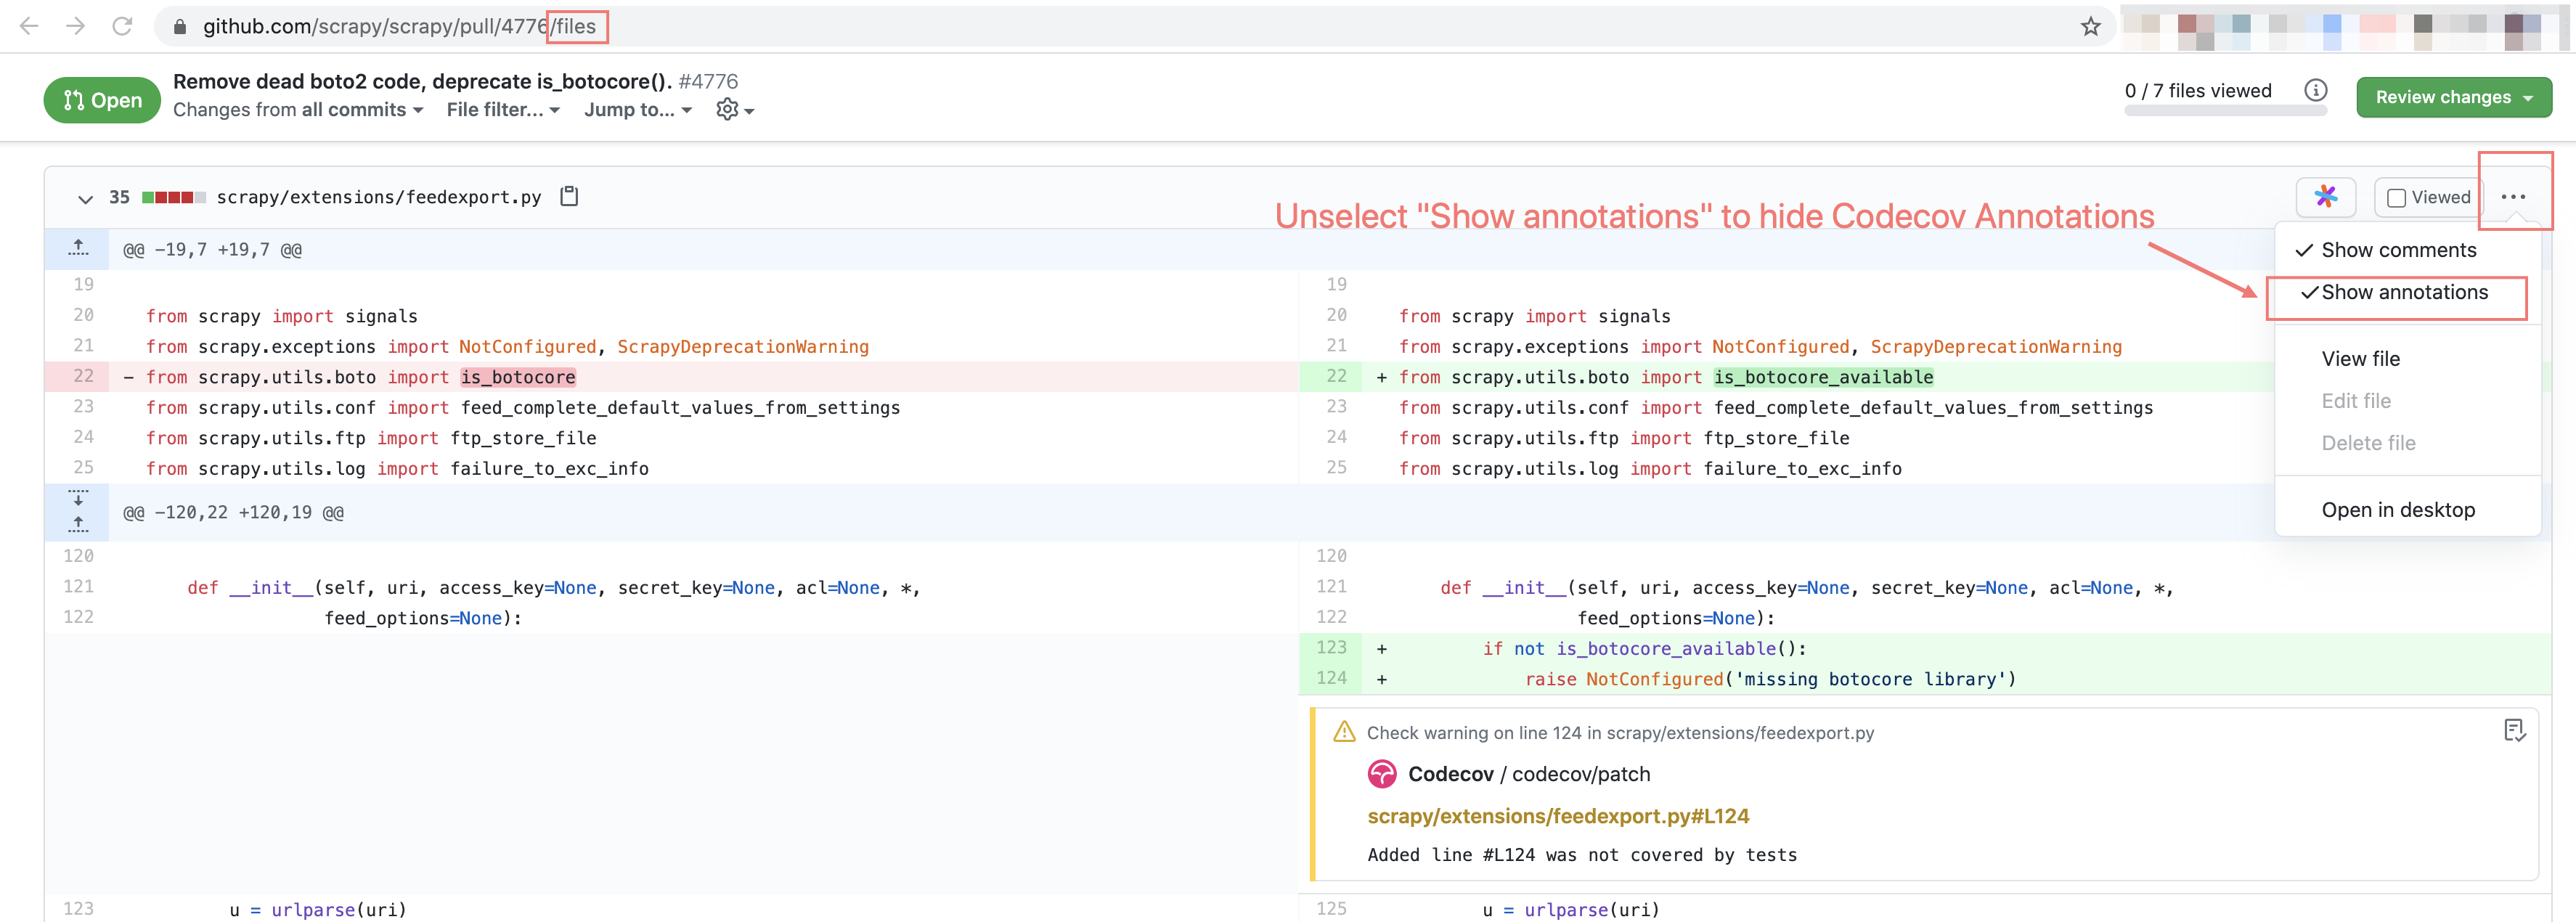 Hiding Codecov Annotations in Files view